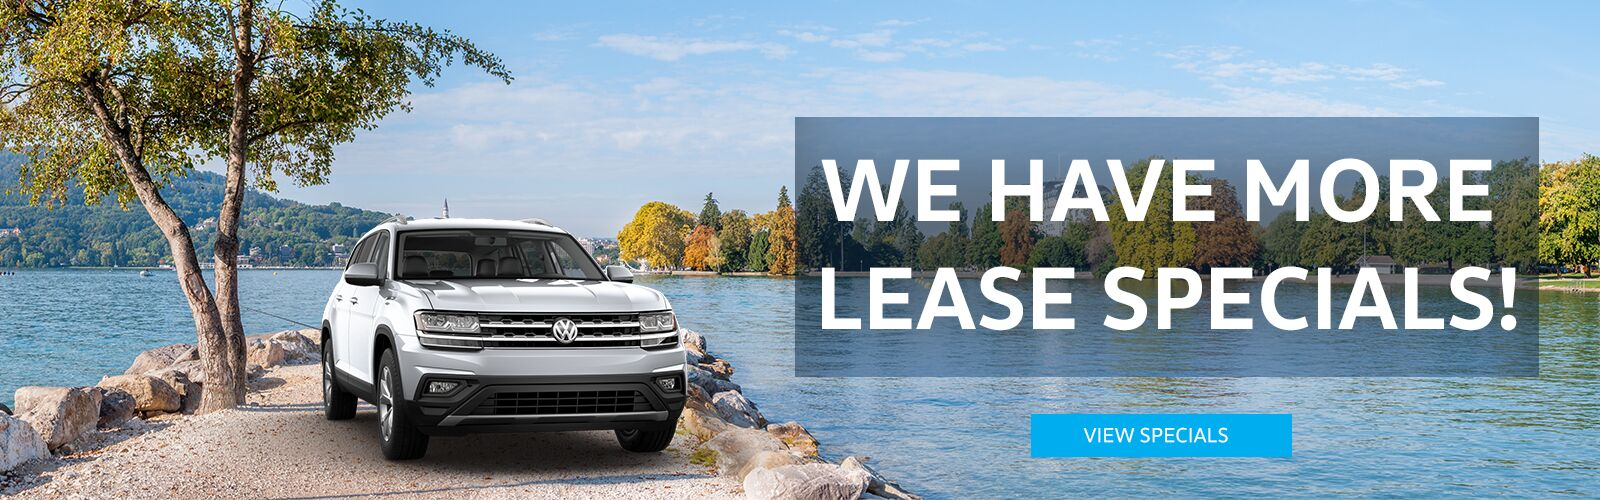 Sept 19 Lease Specials